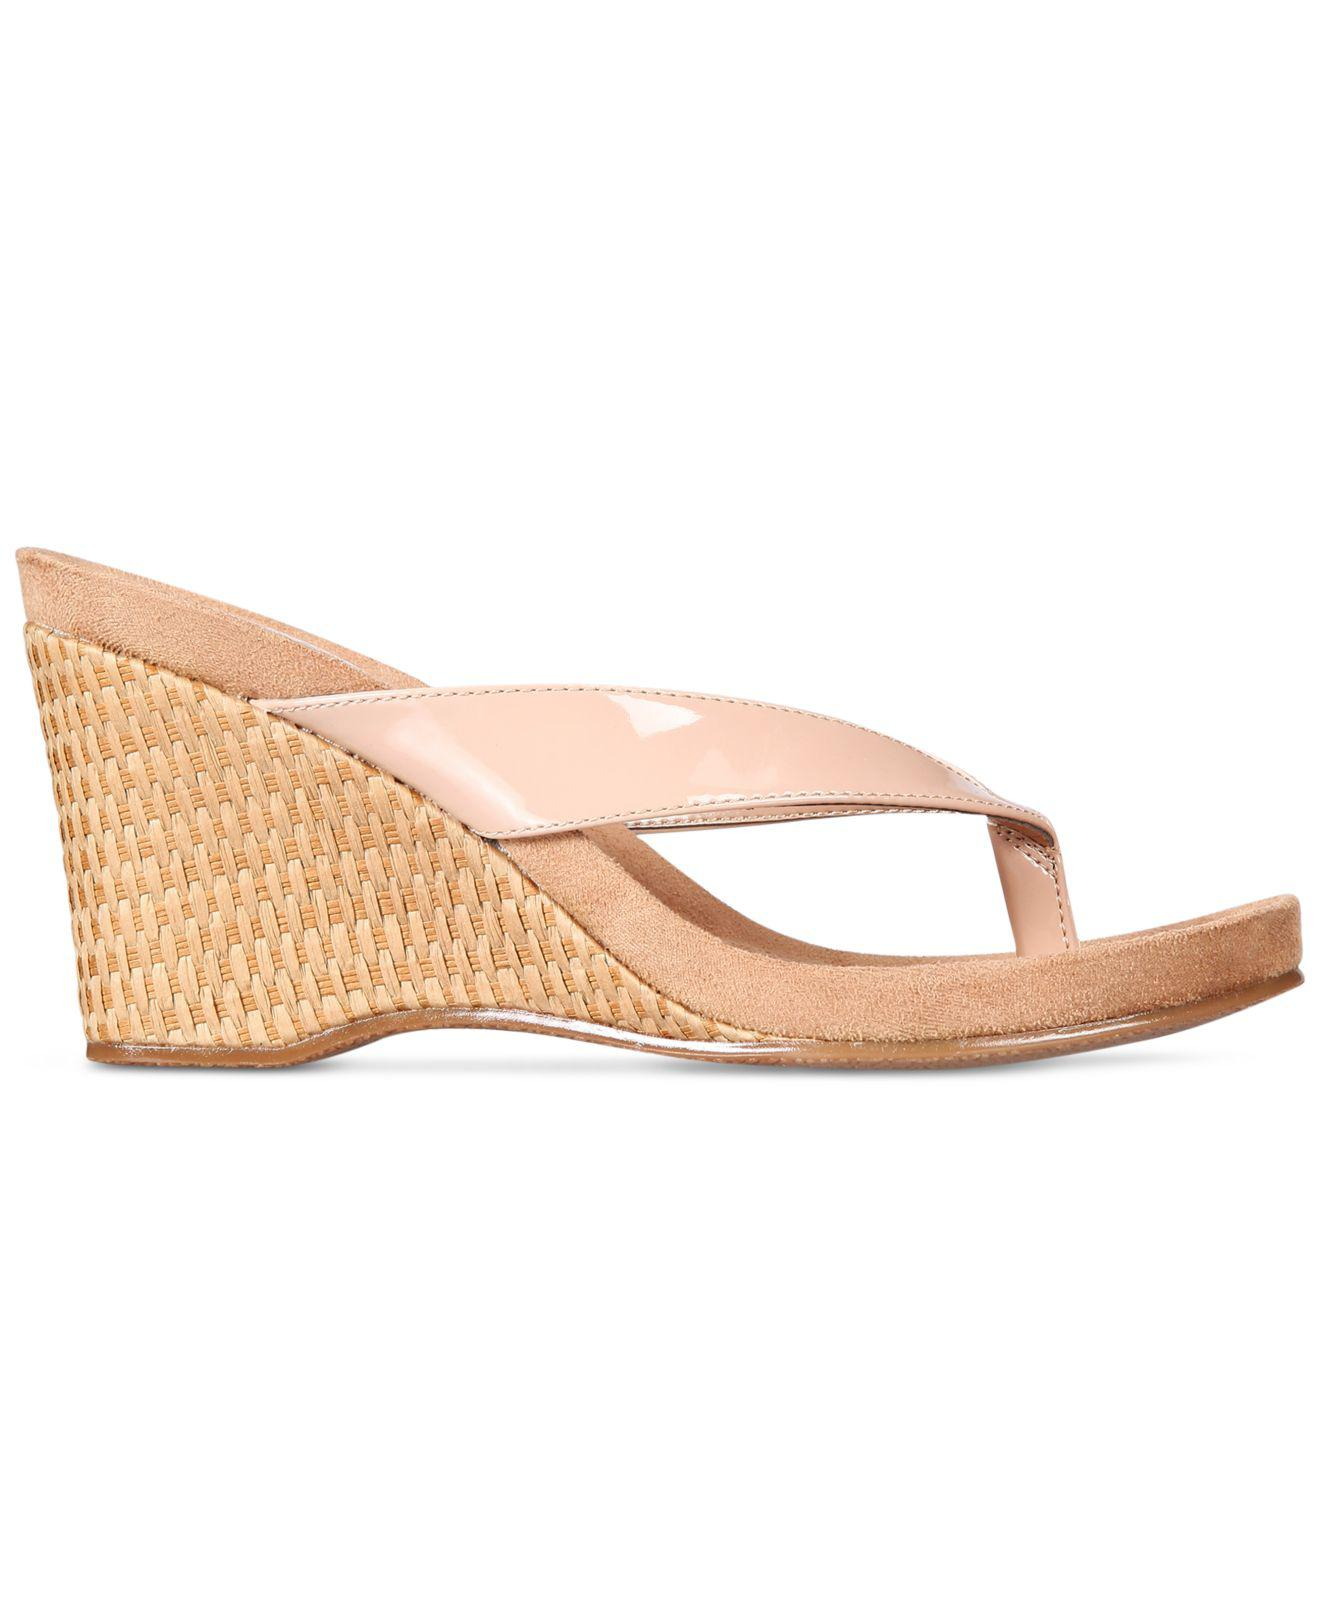 a62f23e536c Style   Co. Chicklet Wedge Sandals in Natural - Save 41% - Lyst